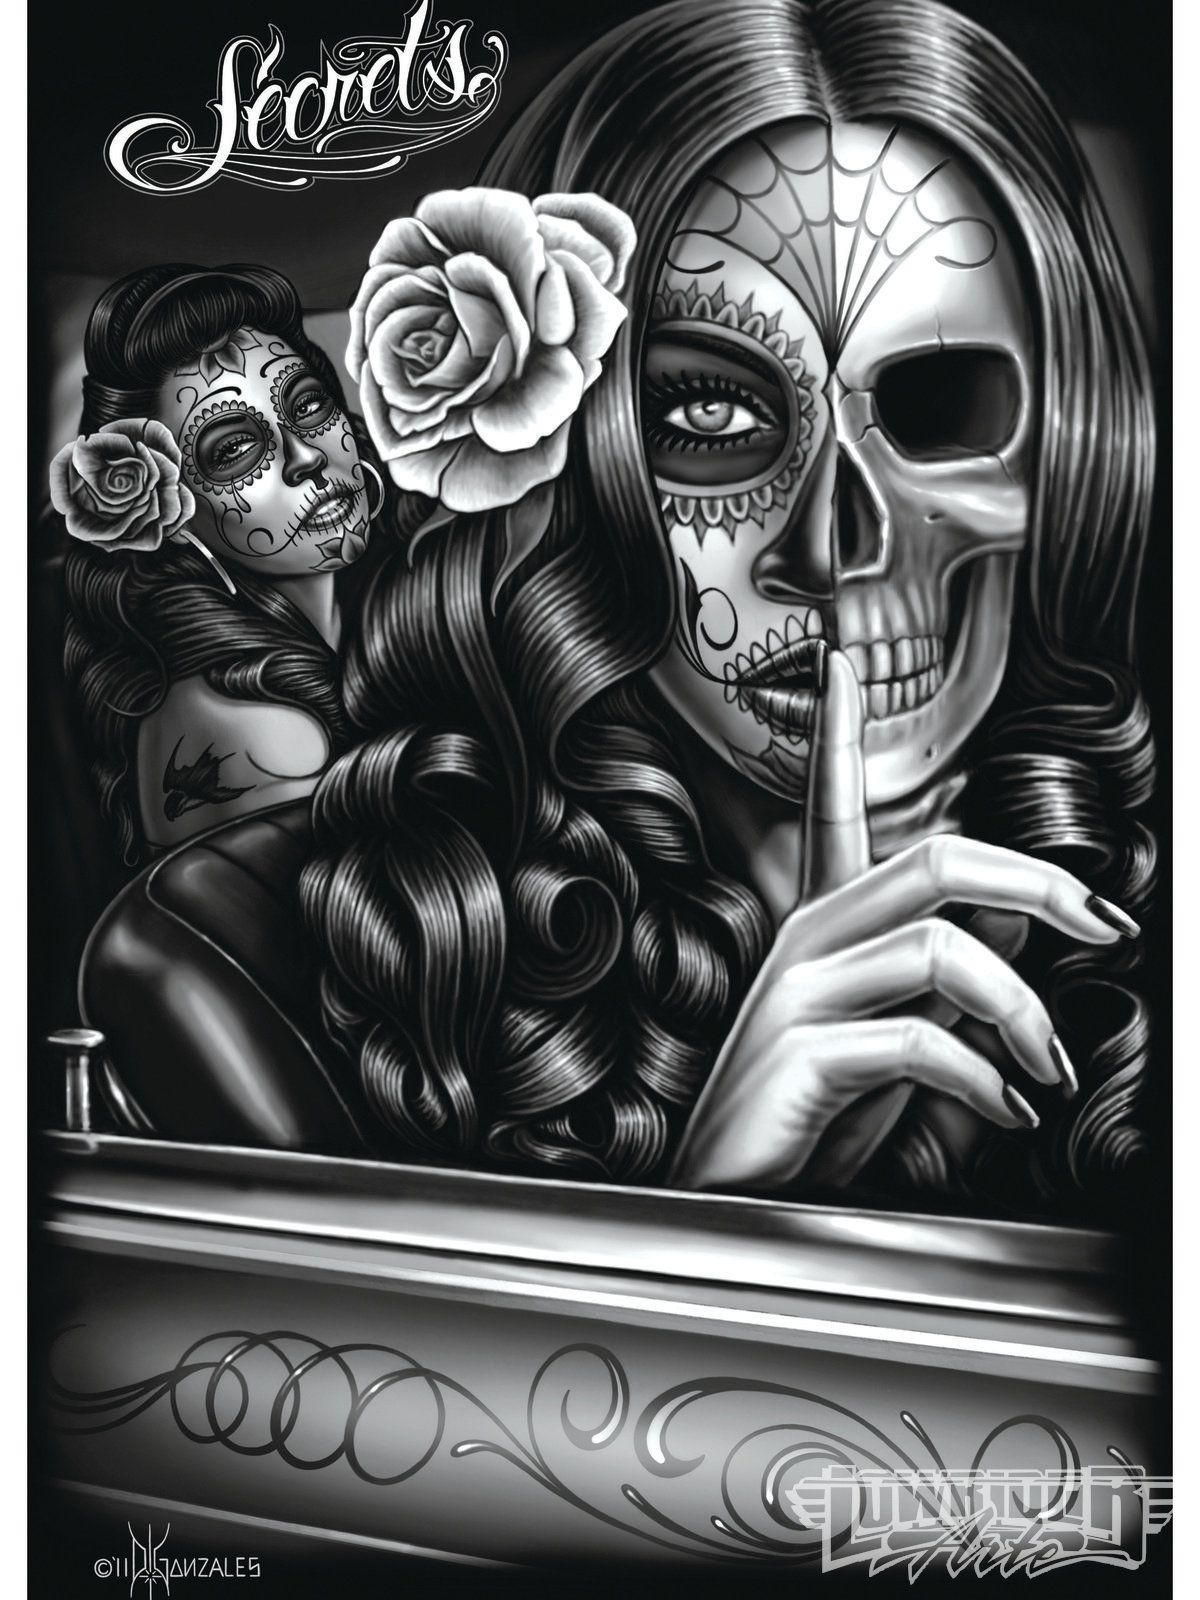 gallery for lowrider arte wallpaper